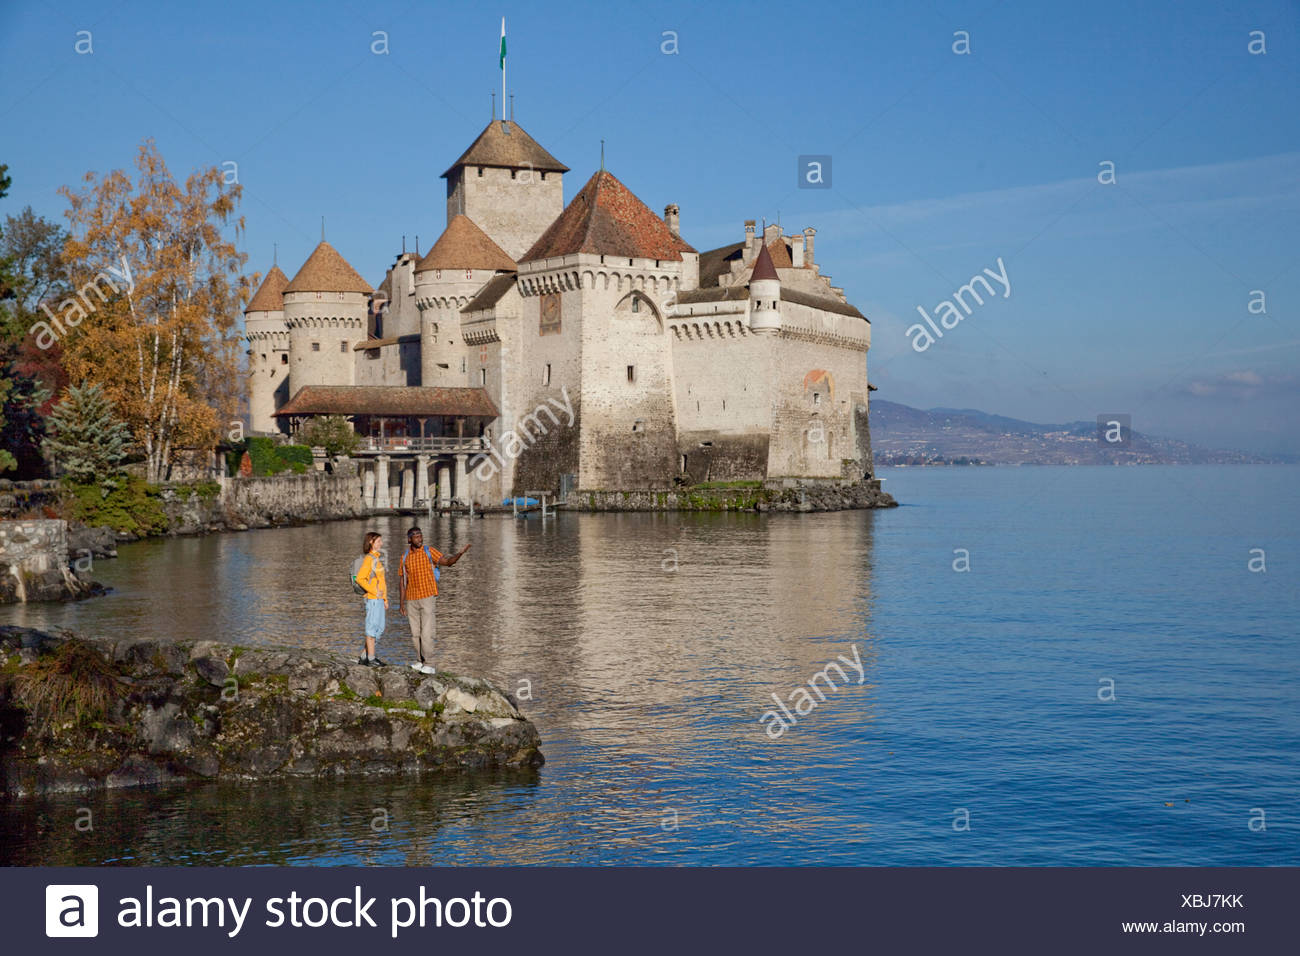 Traveller, Castle, Chillon, autumn, Castle, lake, lakes, canton, VD, Vaud, lake Geneva, Lac Leman, footpath, walking, hiking, tr - Stock Image